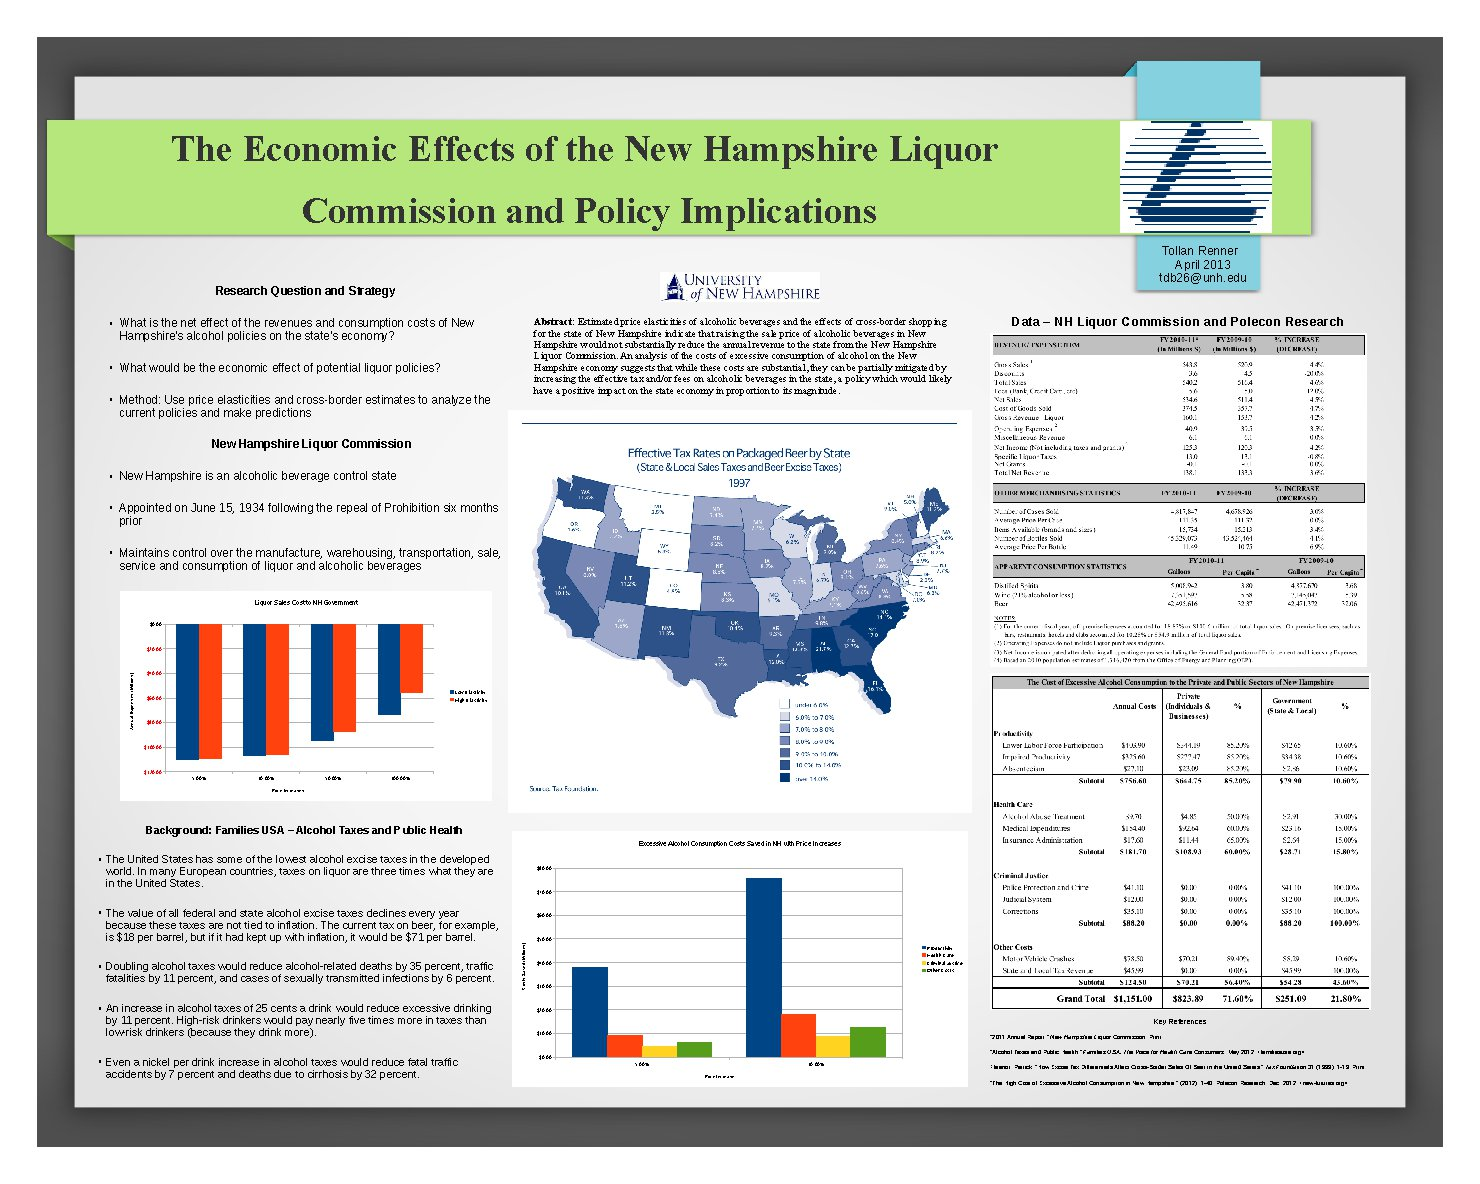 The Economic Effects Of The New Hampshire Liquor Commission And Policy Implications by tdb26